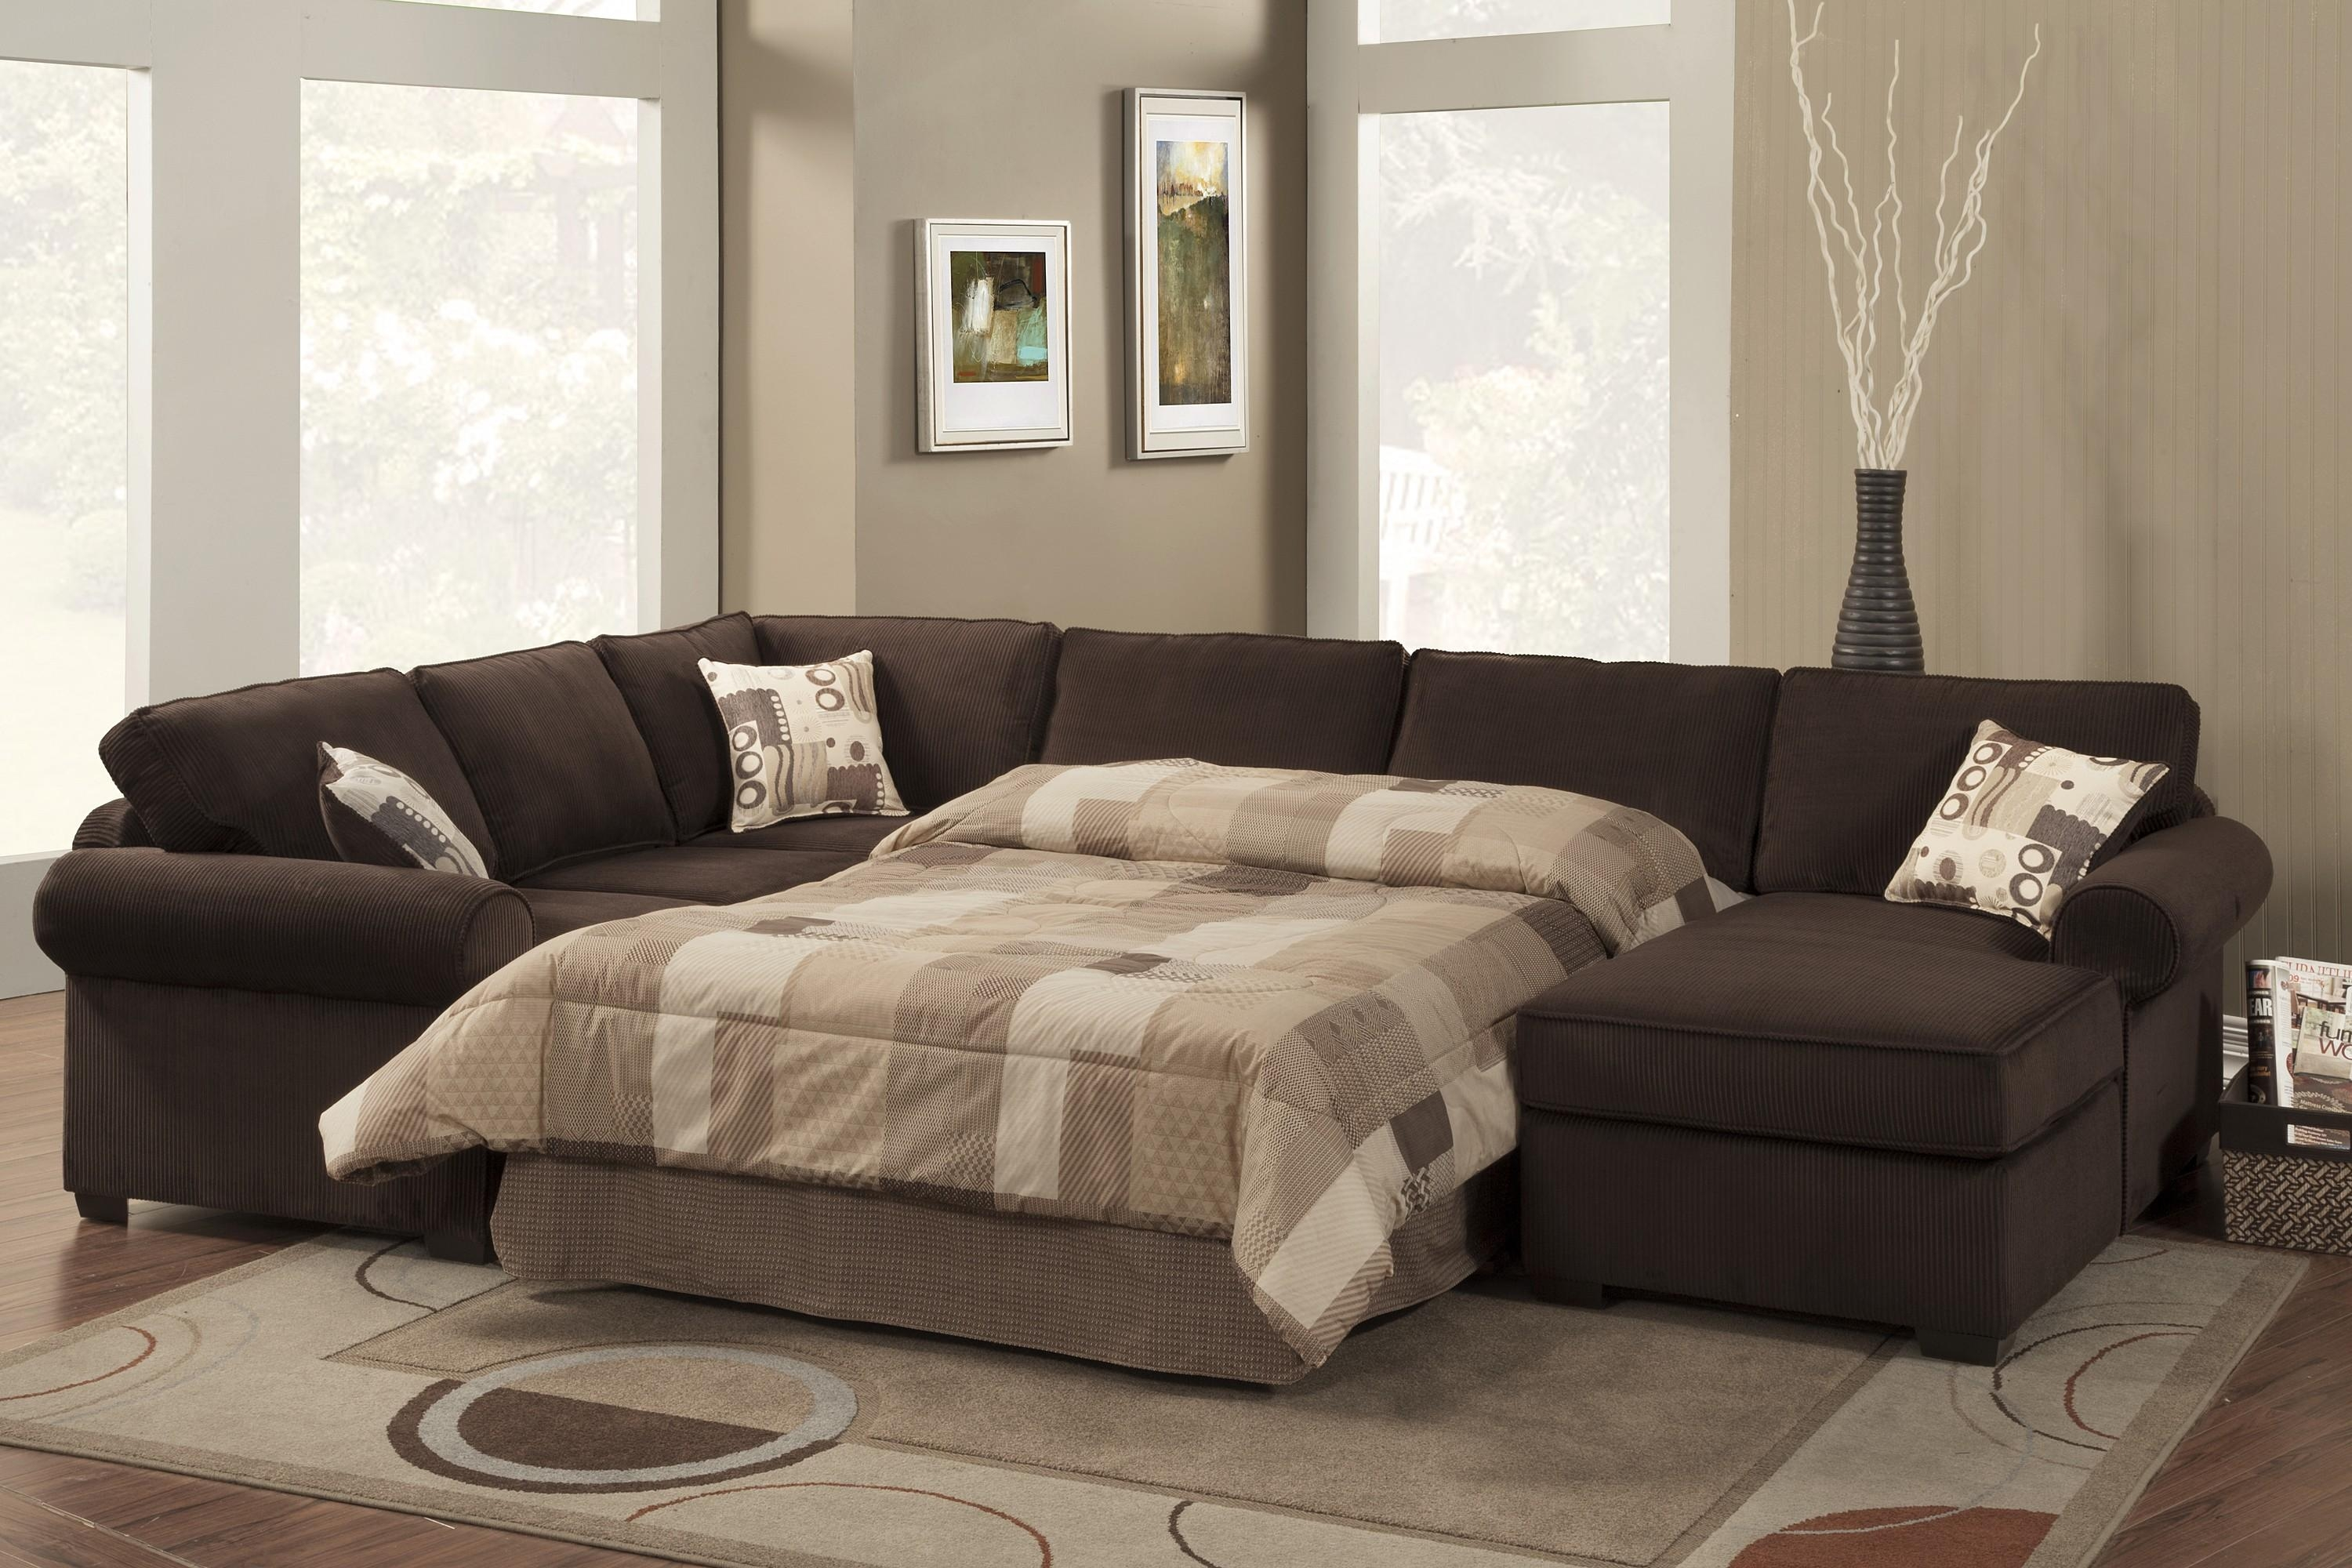 Sectional Sofa With Recliner And Sleeper | Tehranmix Decoration With Regard To Sectional With Recliner And Sleeper (Image 16 of 20)